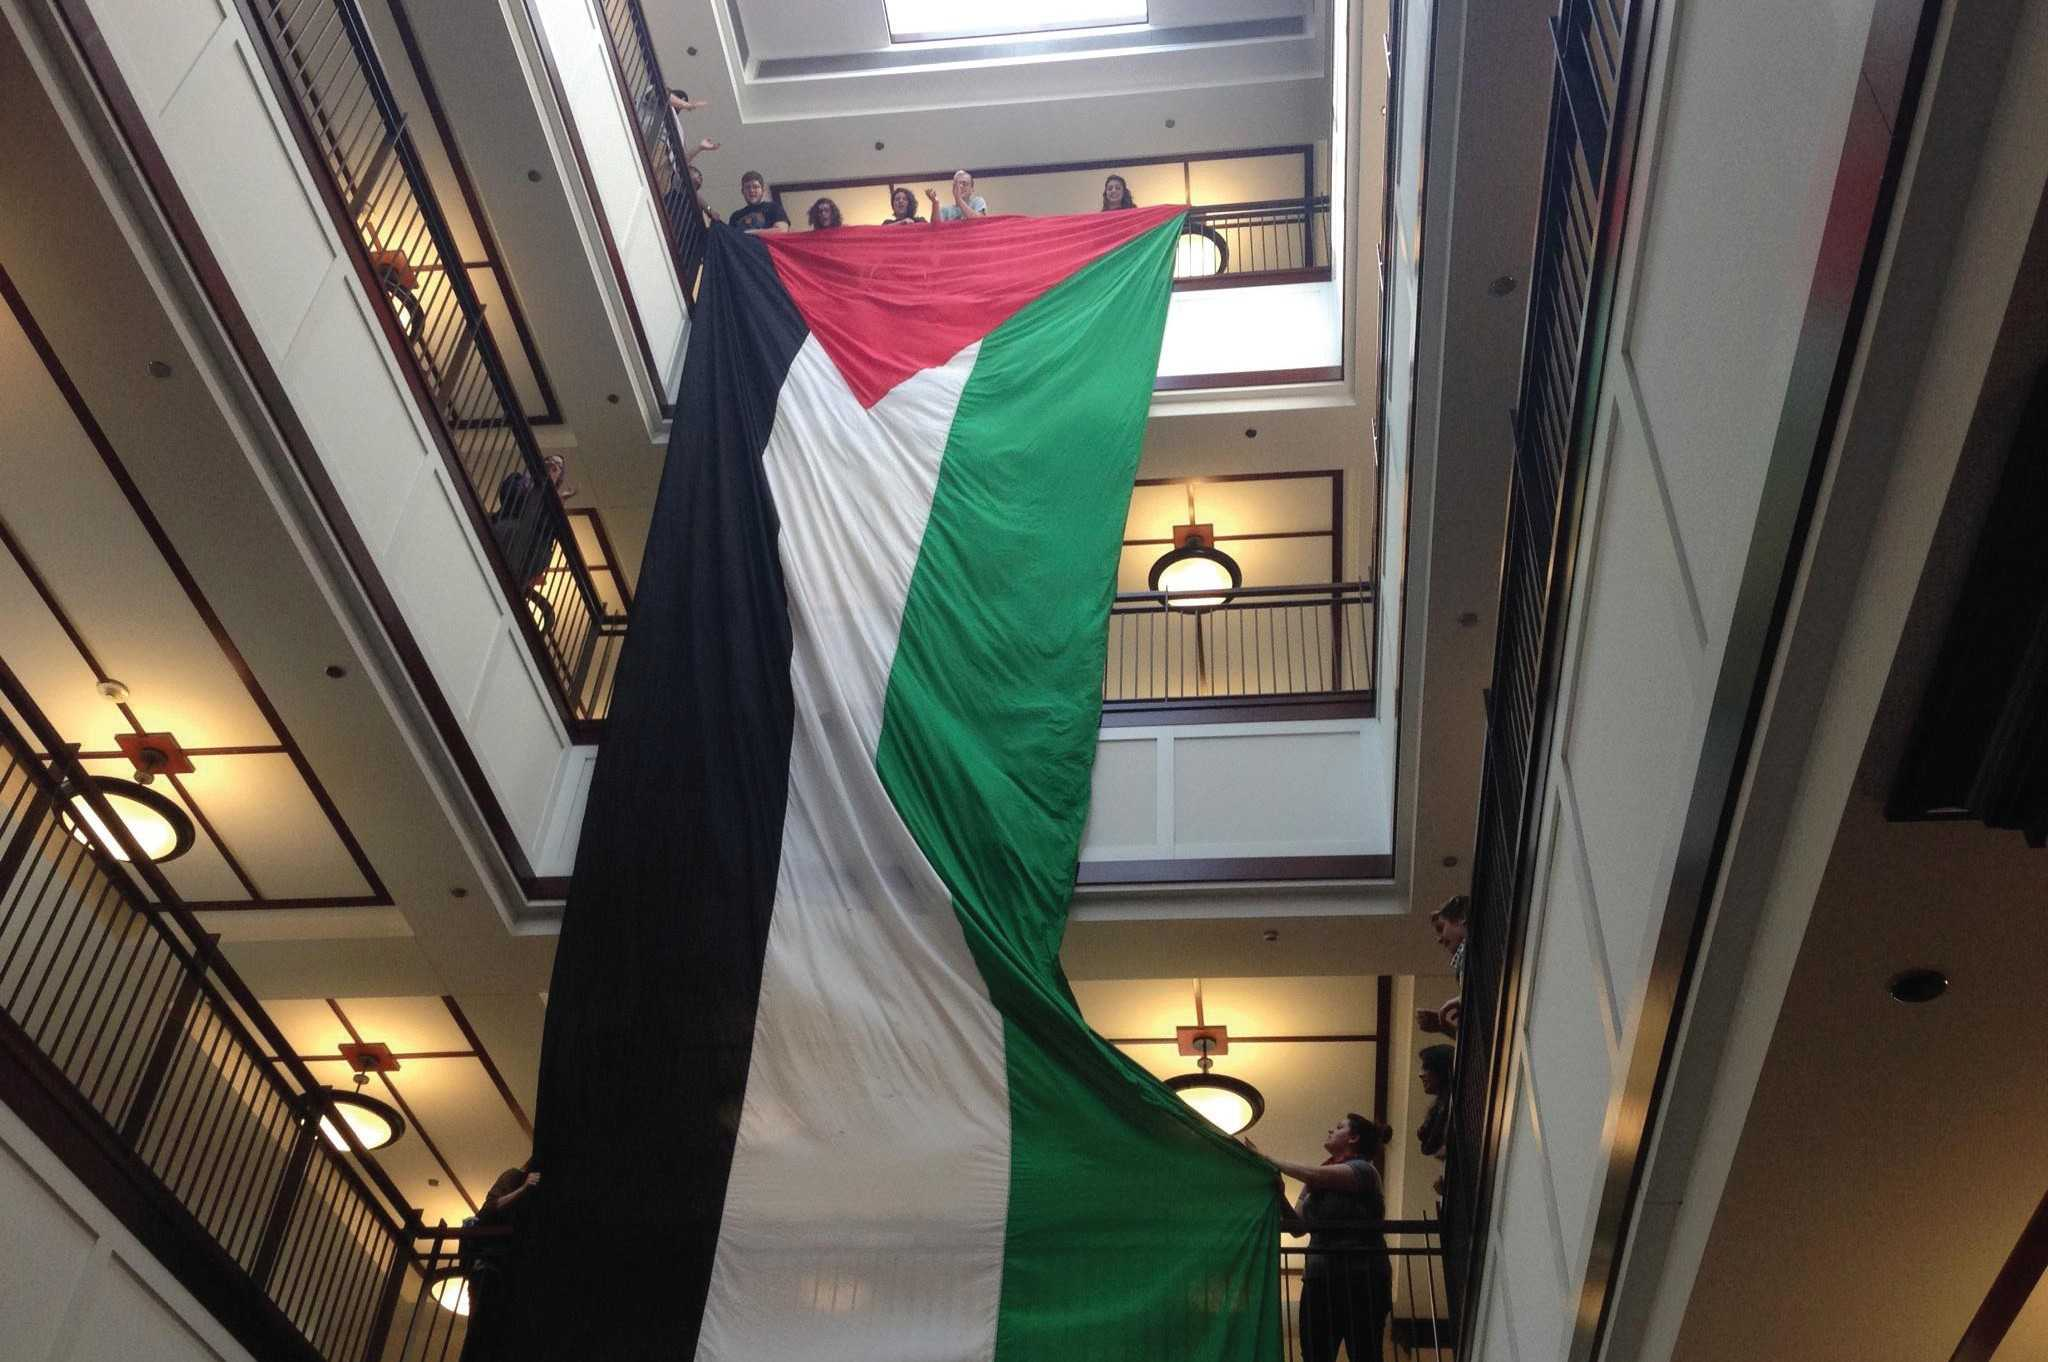 Supporters of DePaul Divest dropped a Palestinian flag Wednesday, May 21 in Arts & Letters Hall. (Matt Paras / The DePaulia)